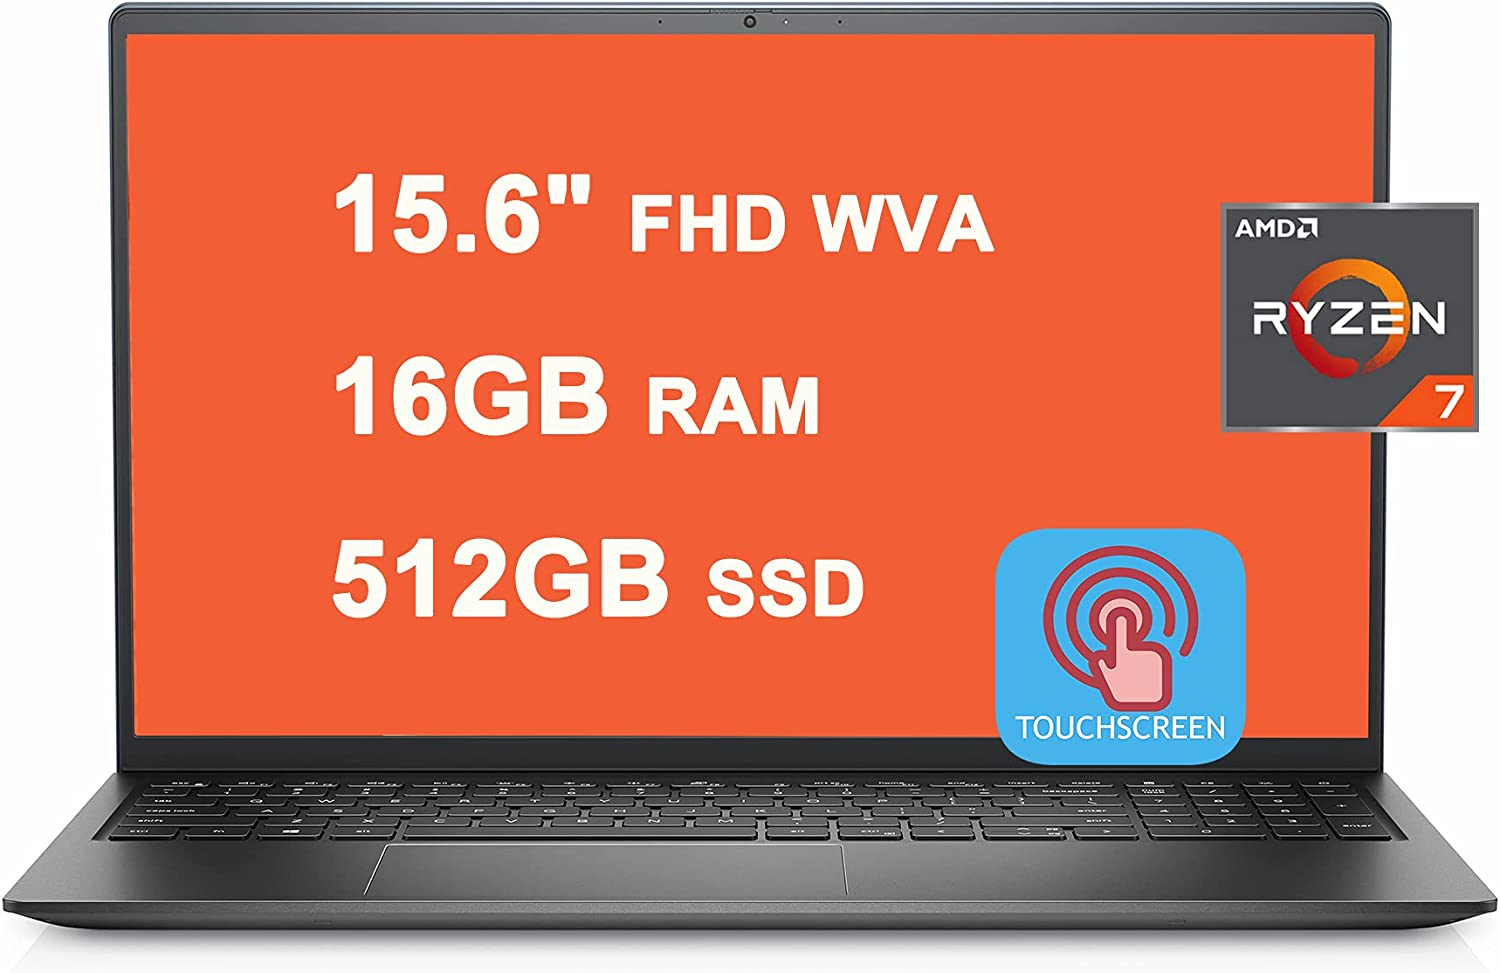 Dell Flagship Inspiron 15 5000 5515 Laptop 15.6